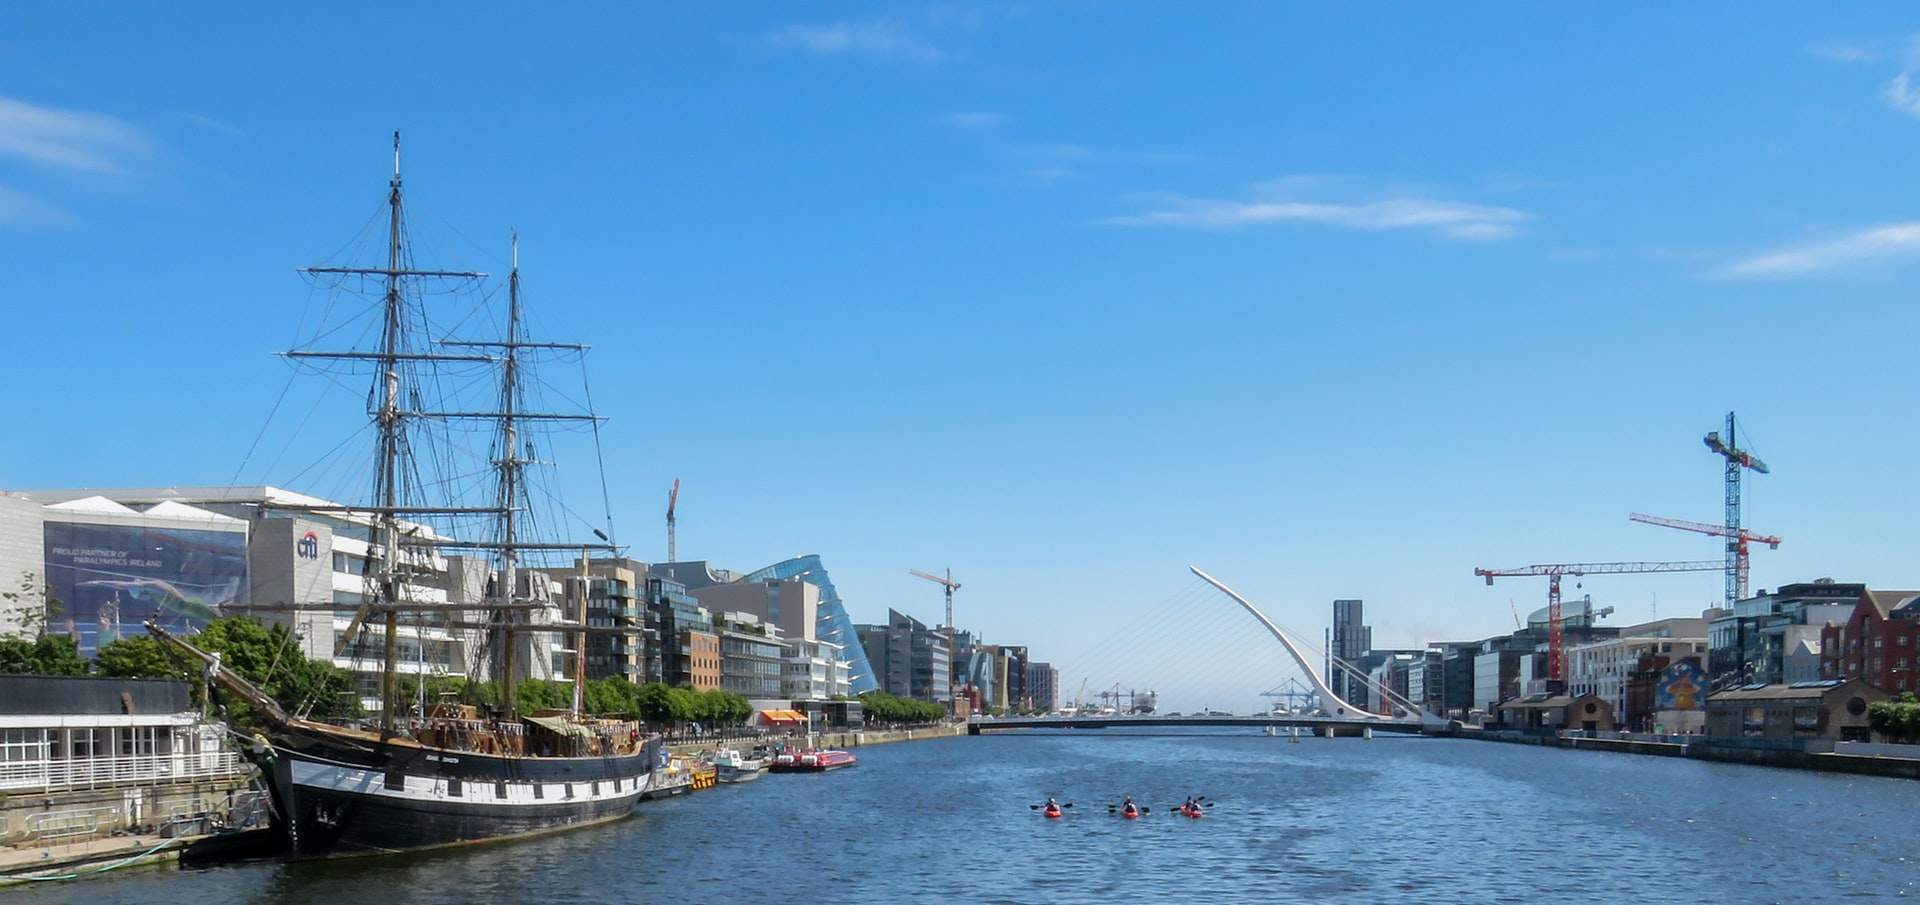 Breathtaking Landmarks You Don't Want To Miss Out on in Dublin!